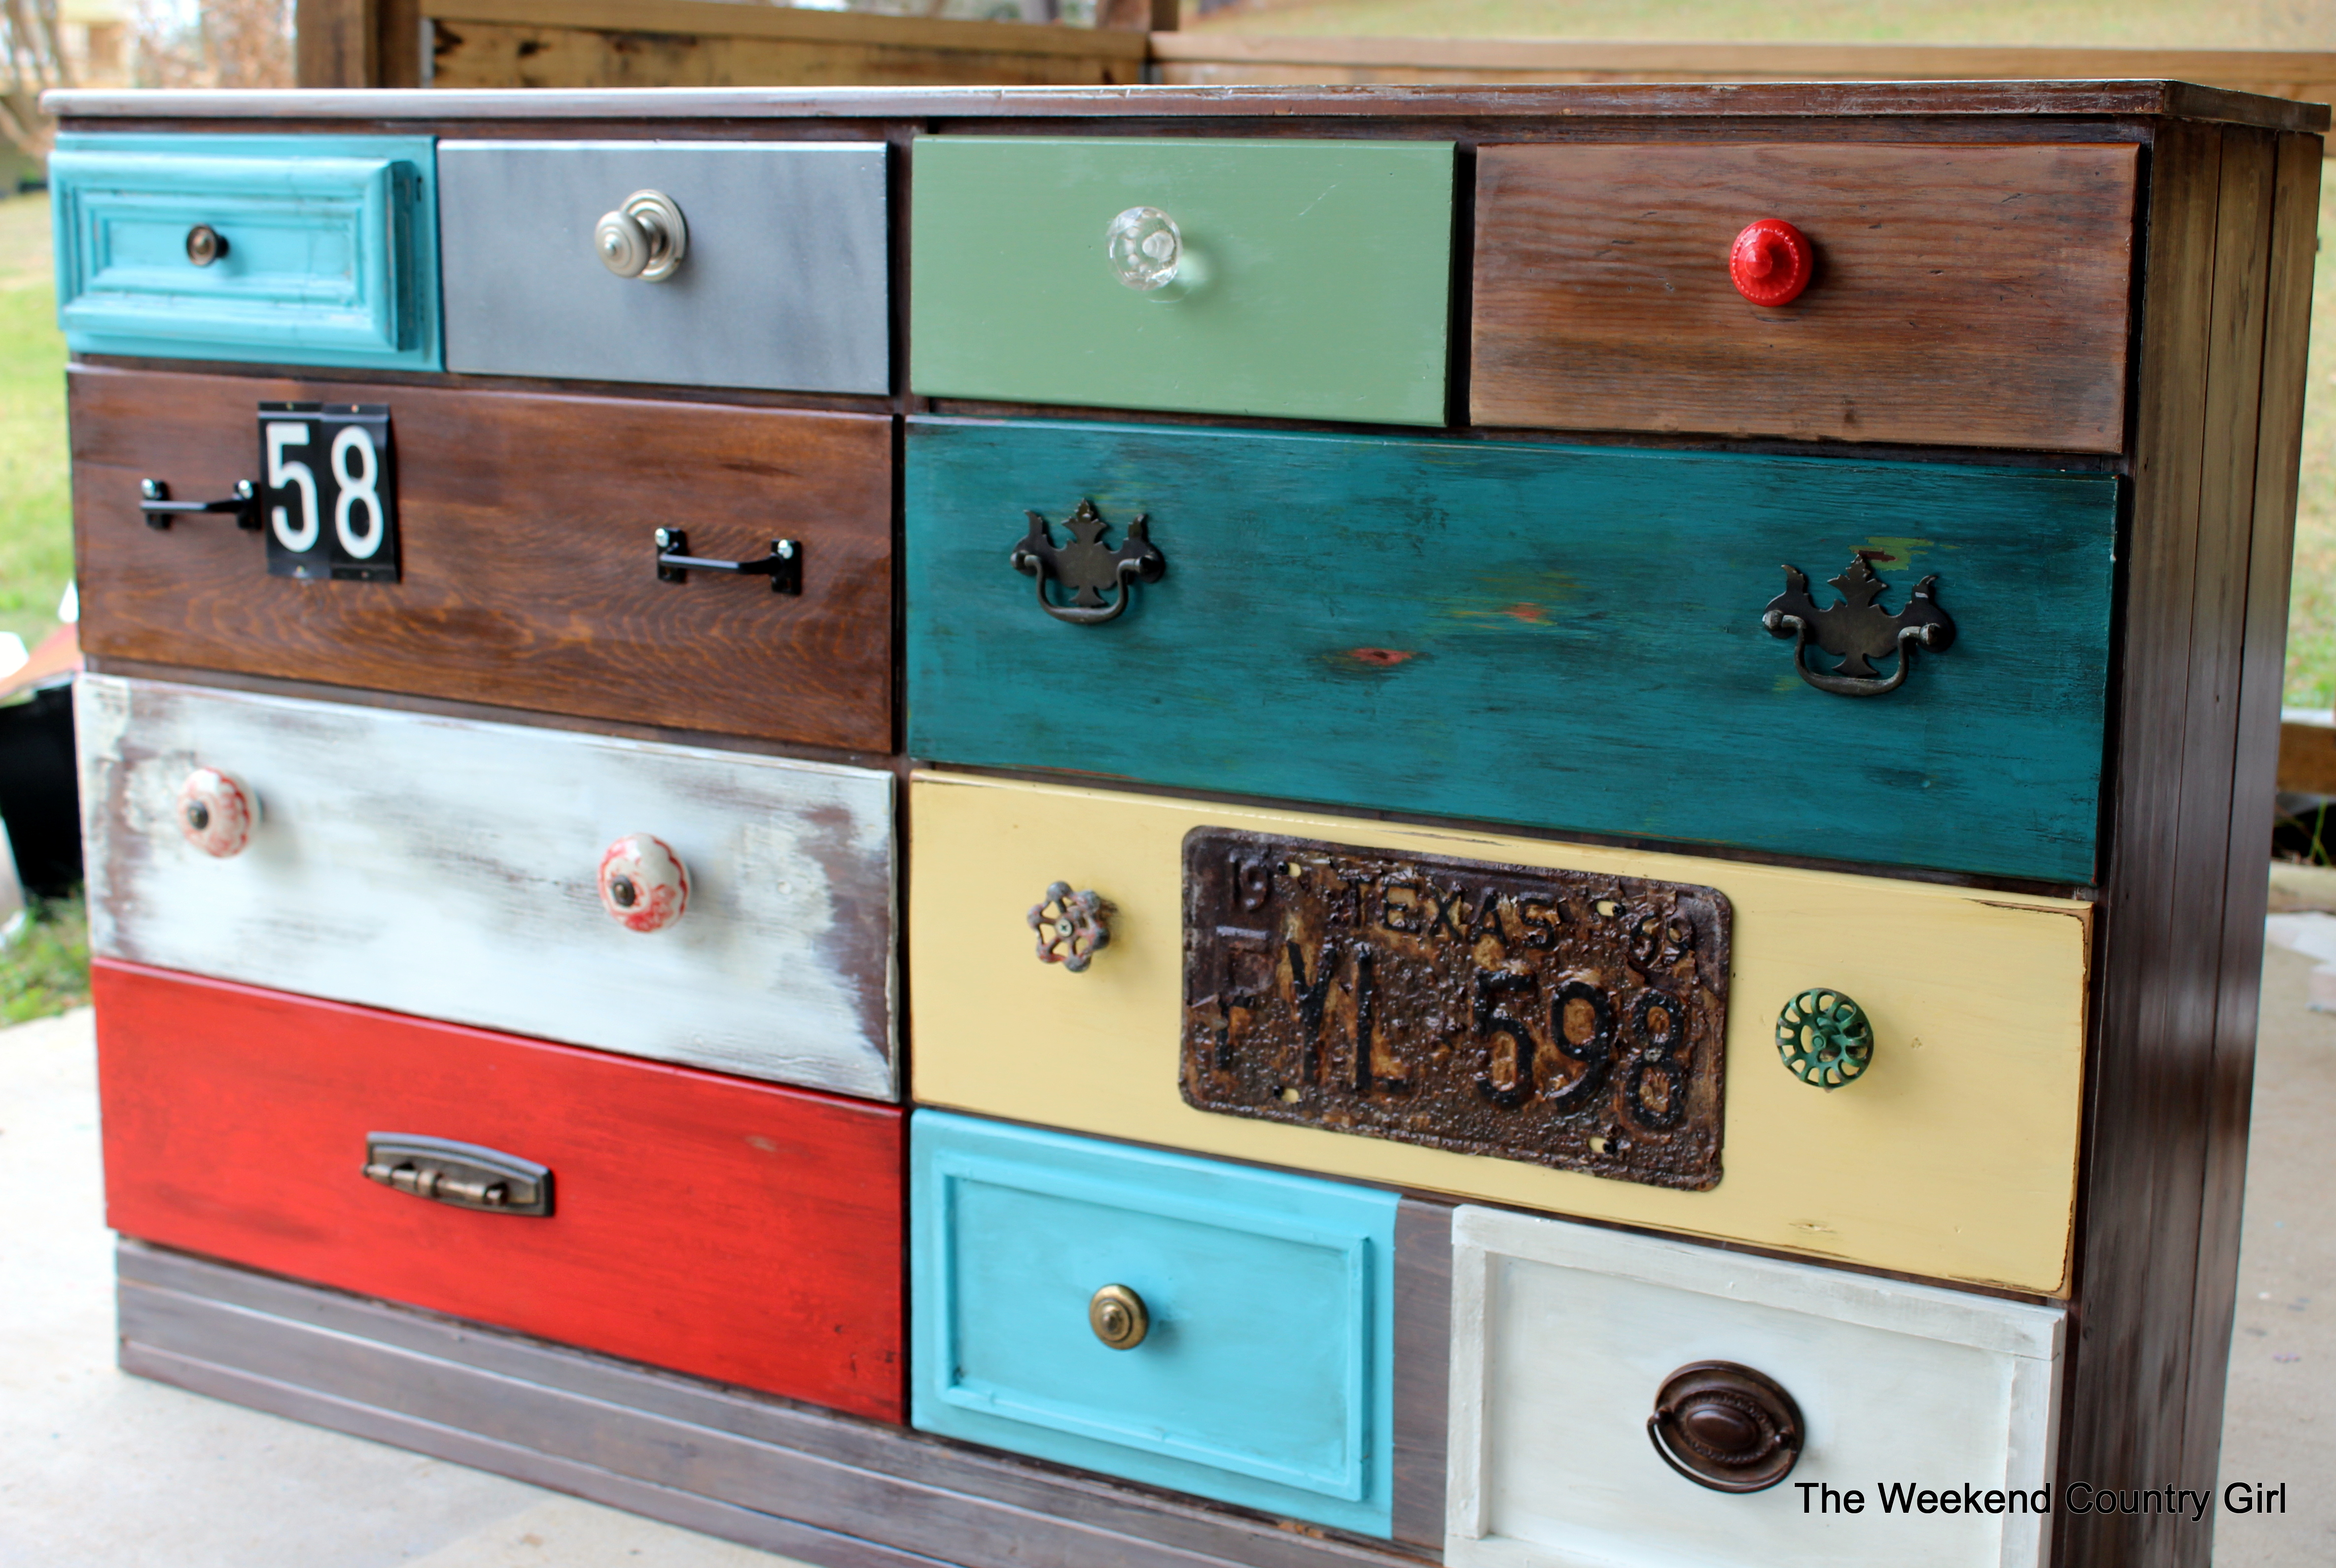 Create A Rustic Look With Wood Stain 07 By The Weekend Country Girl On  @Remodelaholic